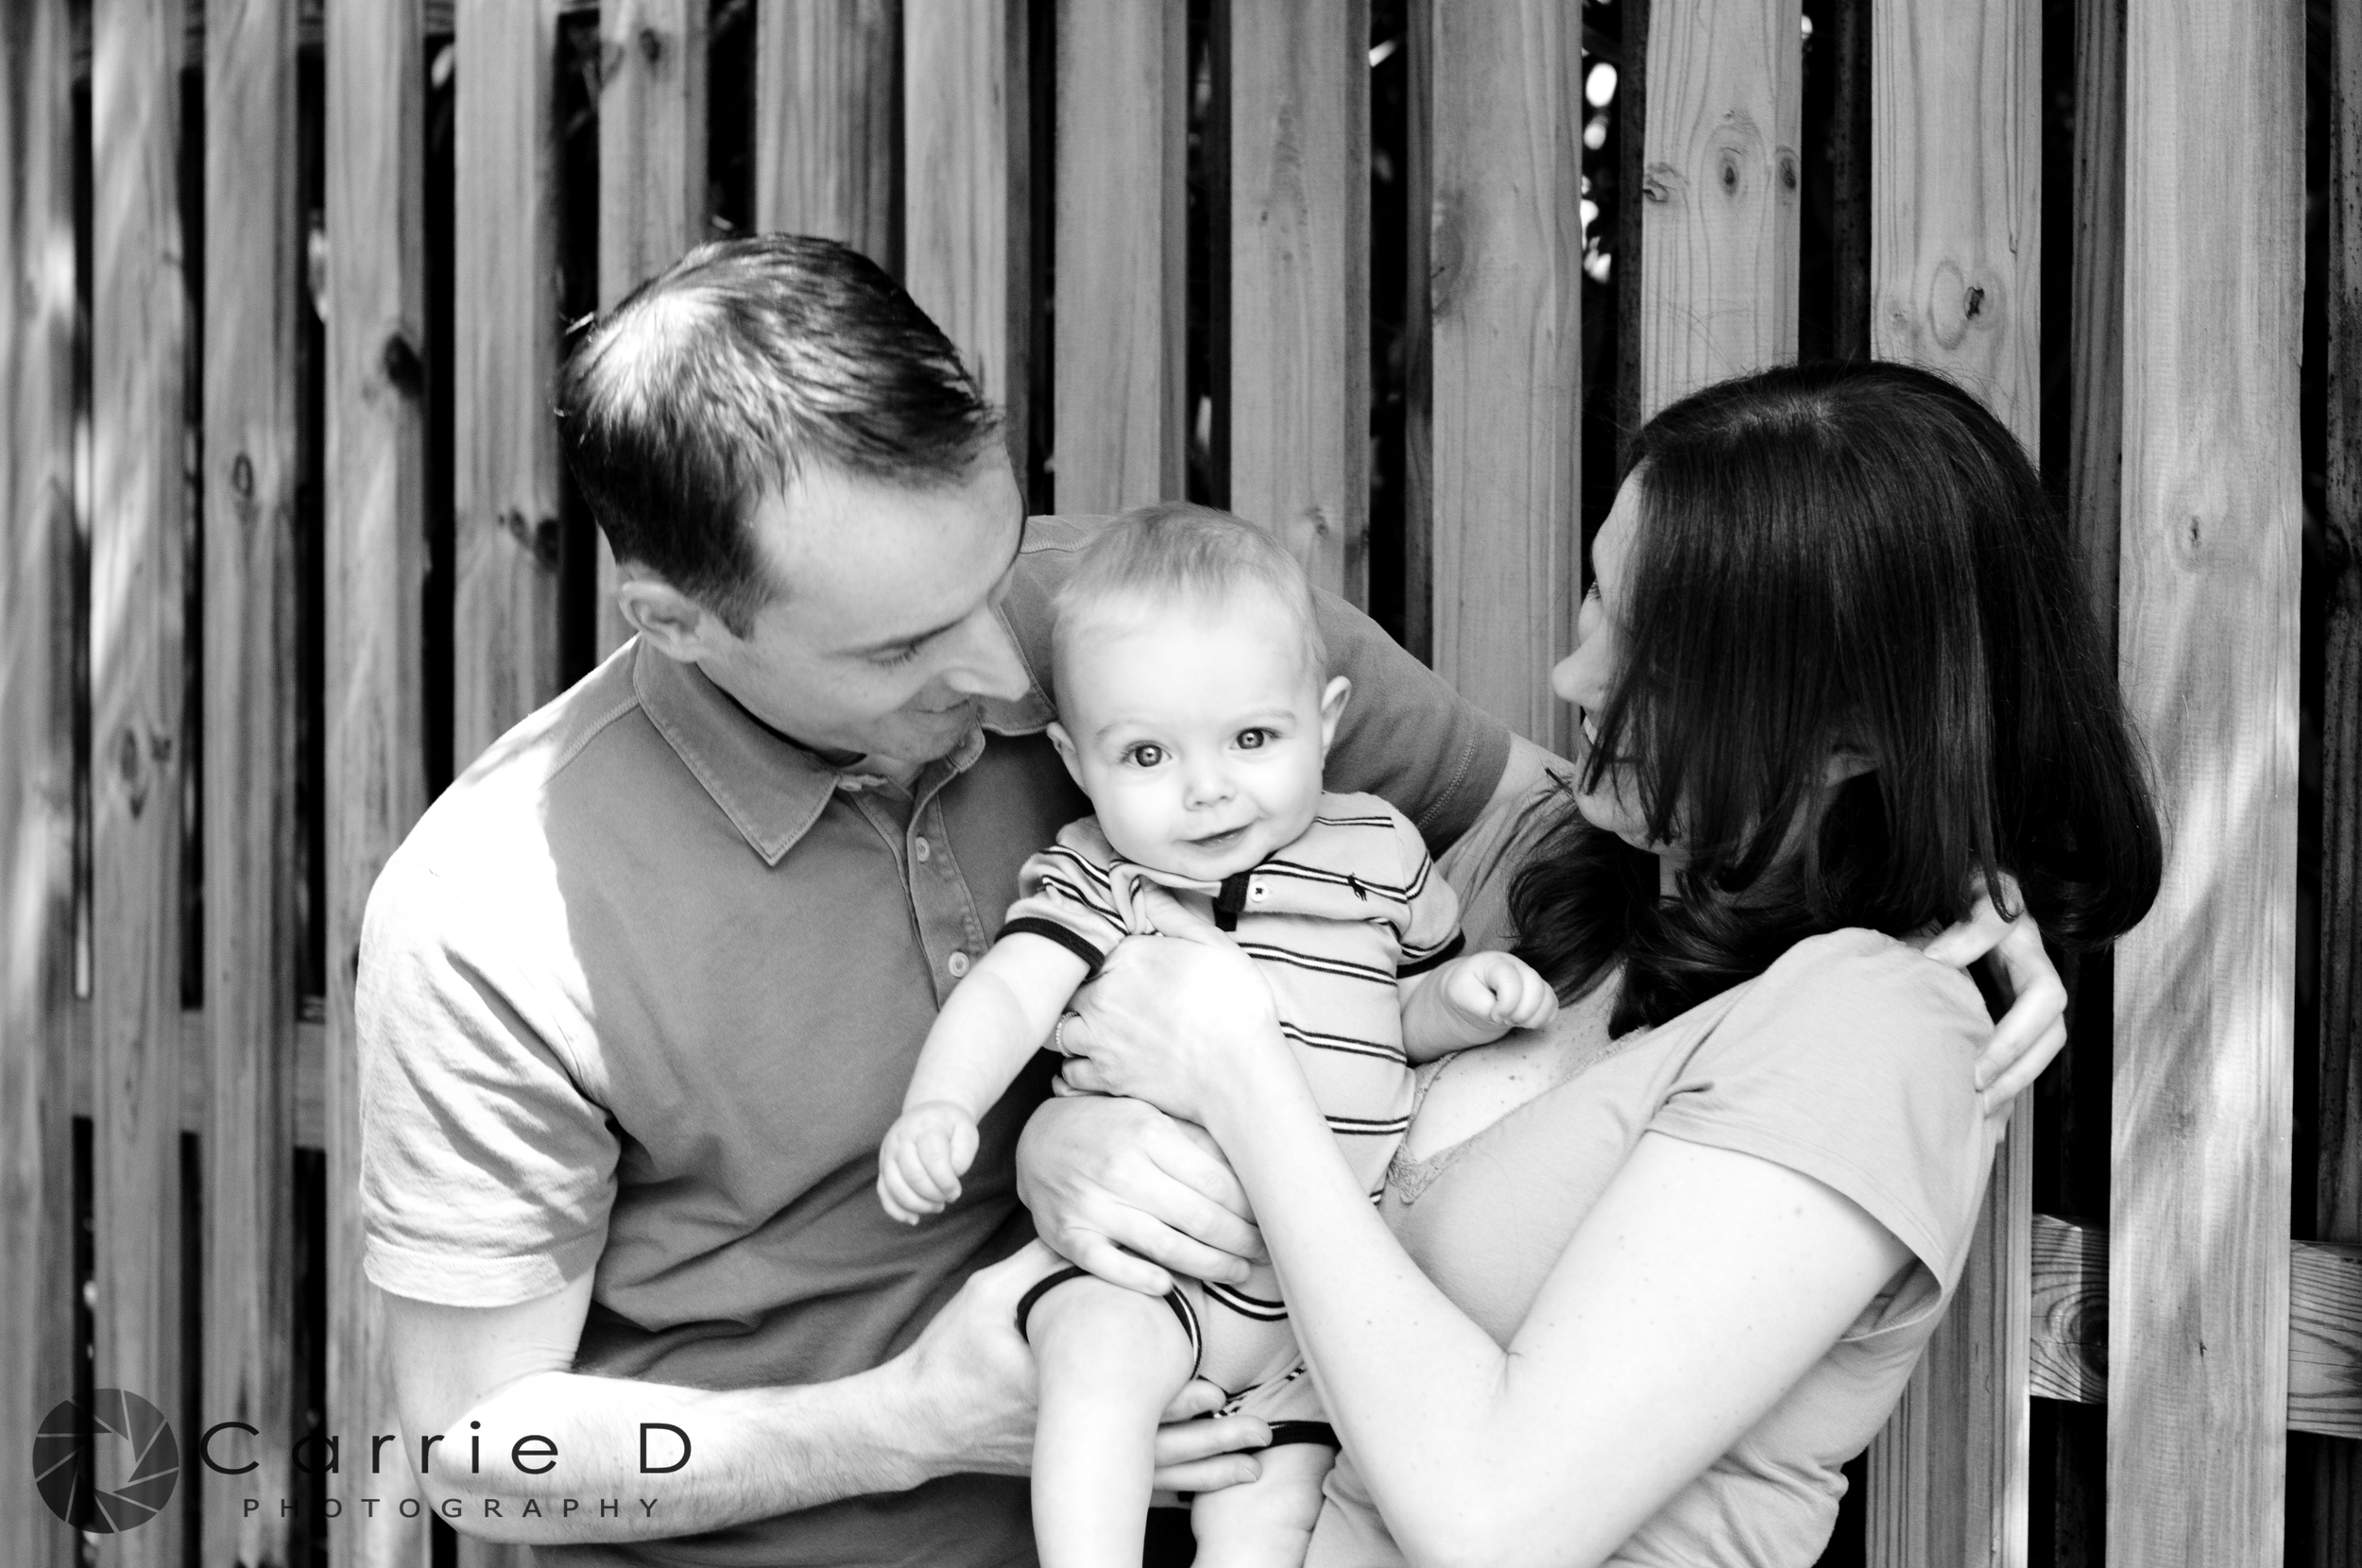 Bethesda Infant Photographer - Bethesda Natural Light Infant Photographer - Bethesda Natural Light Portrait Photographer - Bethesda Portrait Photographer - Bethesda Family Photographer - Bethesda Natural Light Family Photographer - Family PHotography - 6 month photos - 6 month poses